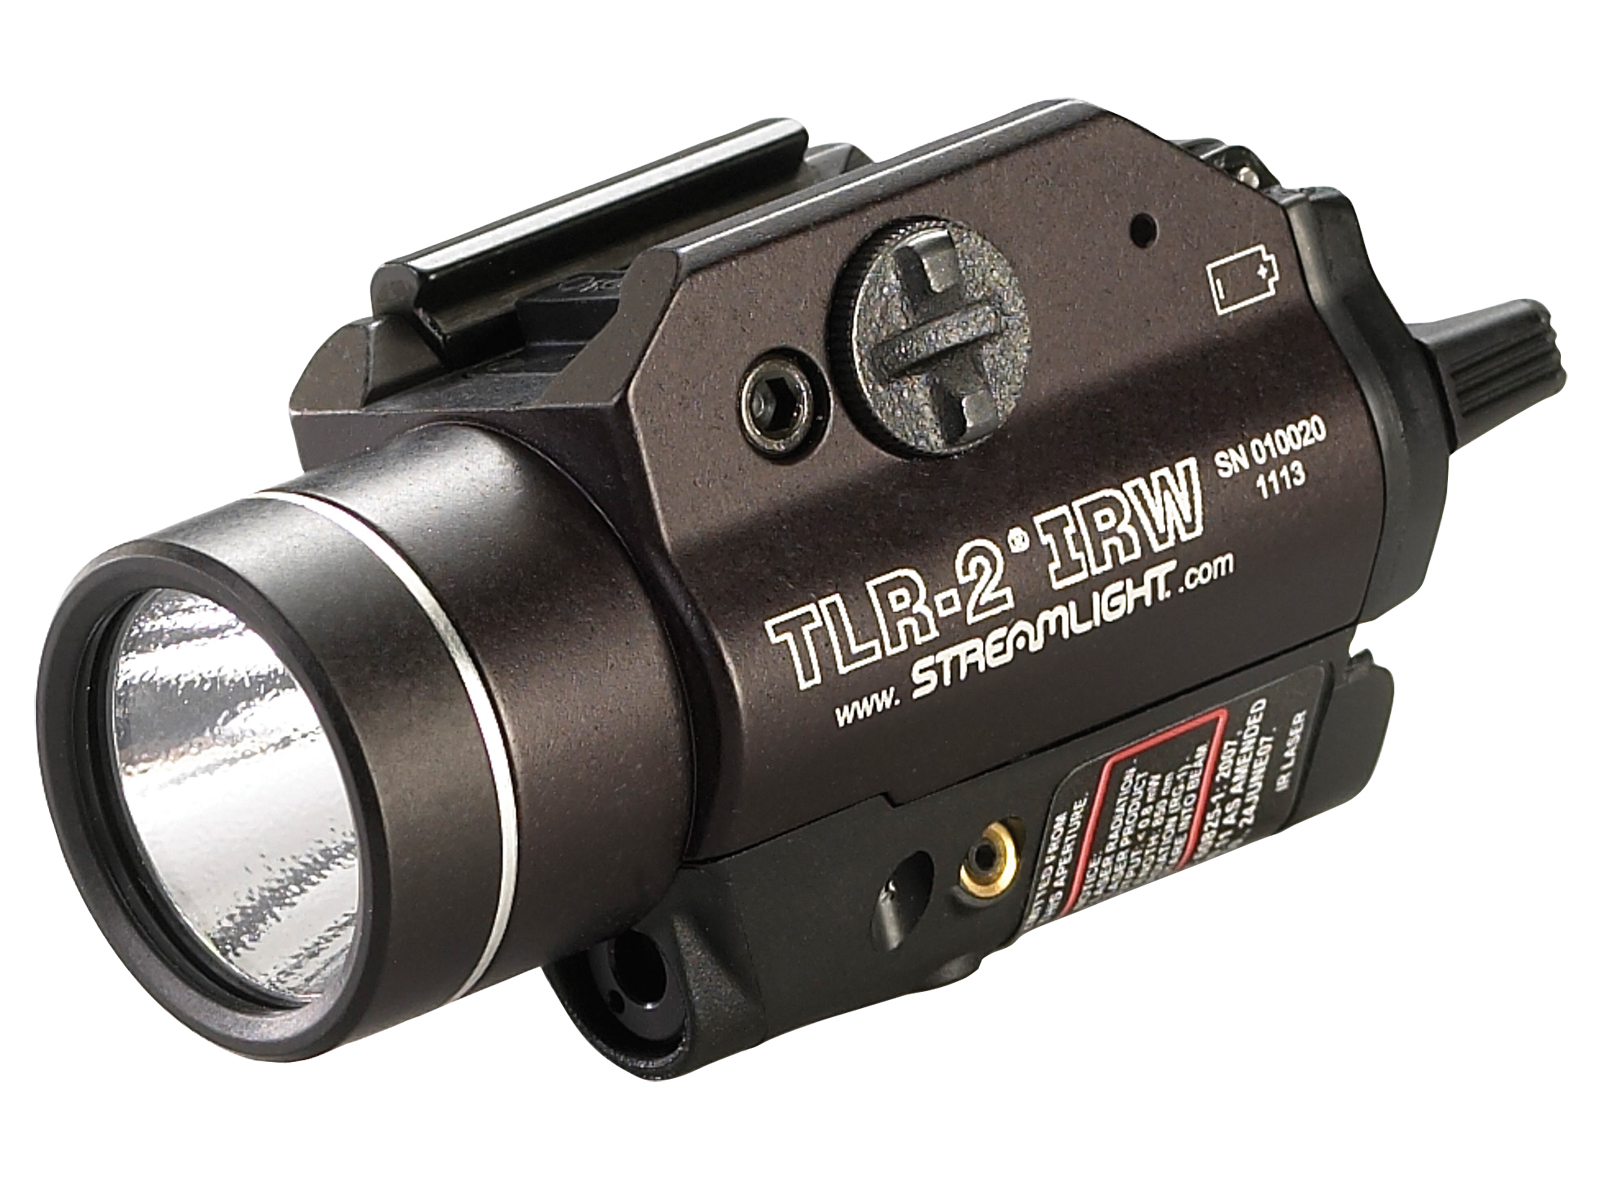 Streamlight TLR-2 IRW Weaponlight w/ Eye Safe Laser at 2014 SHOT Show